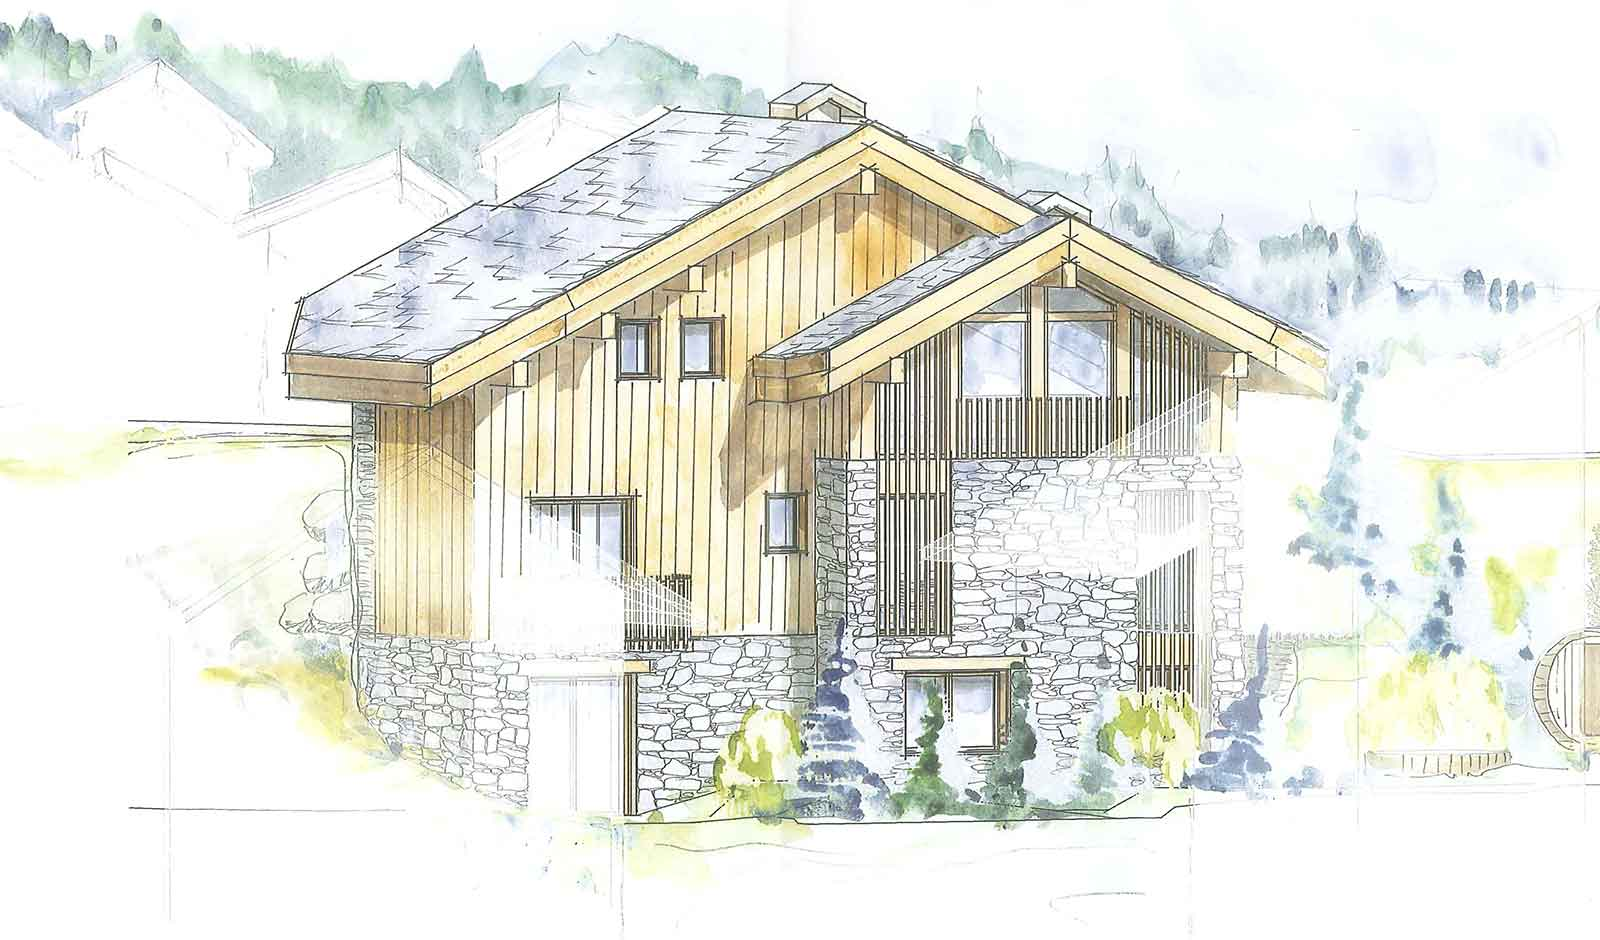 chalet-charlie-1-atelier-crea-and-co-architecte-design-project-manager-meribel-savoie